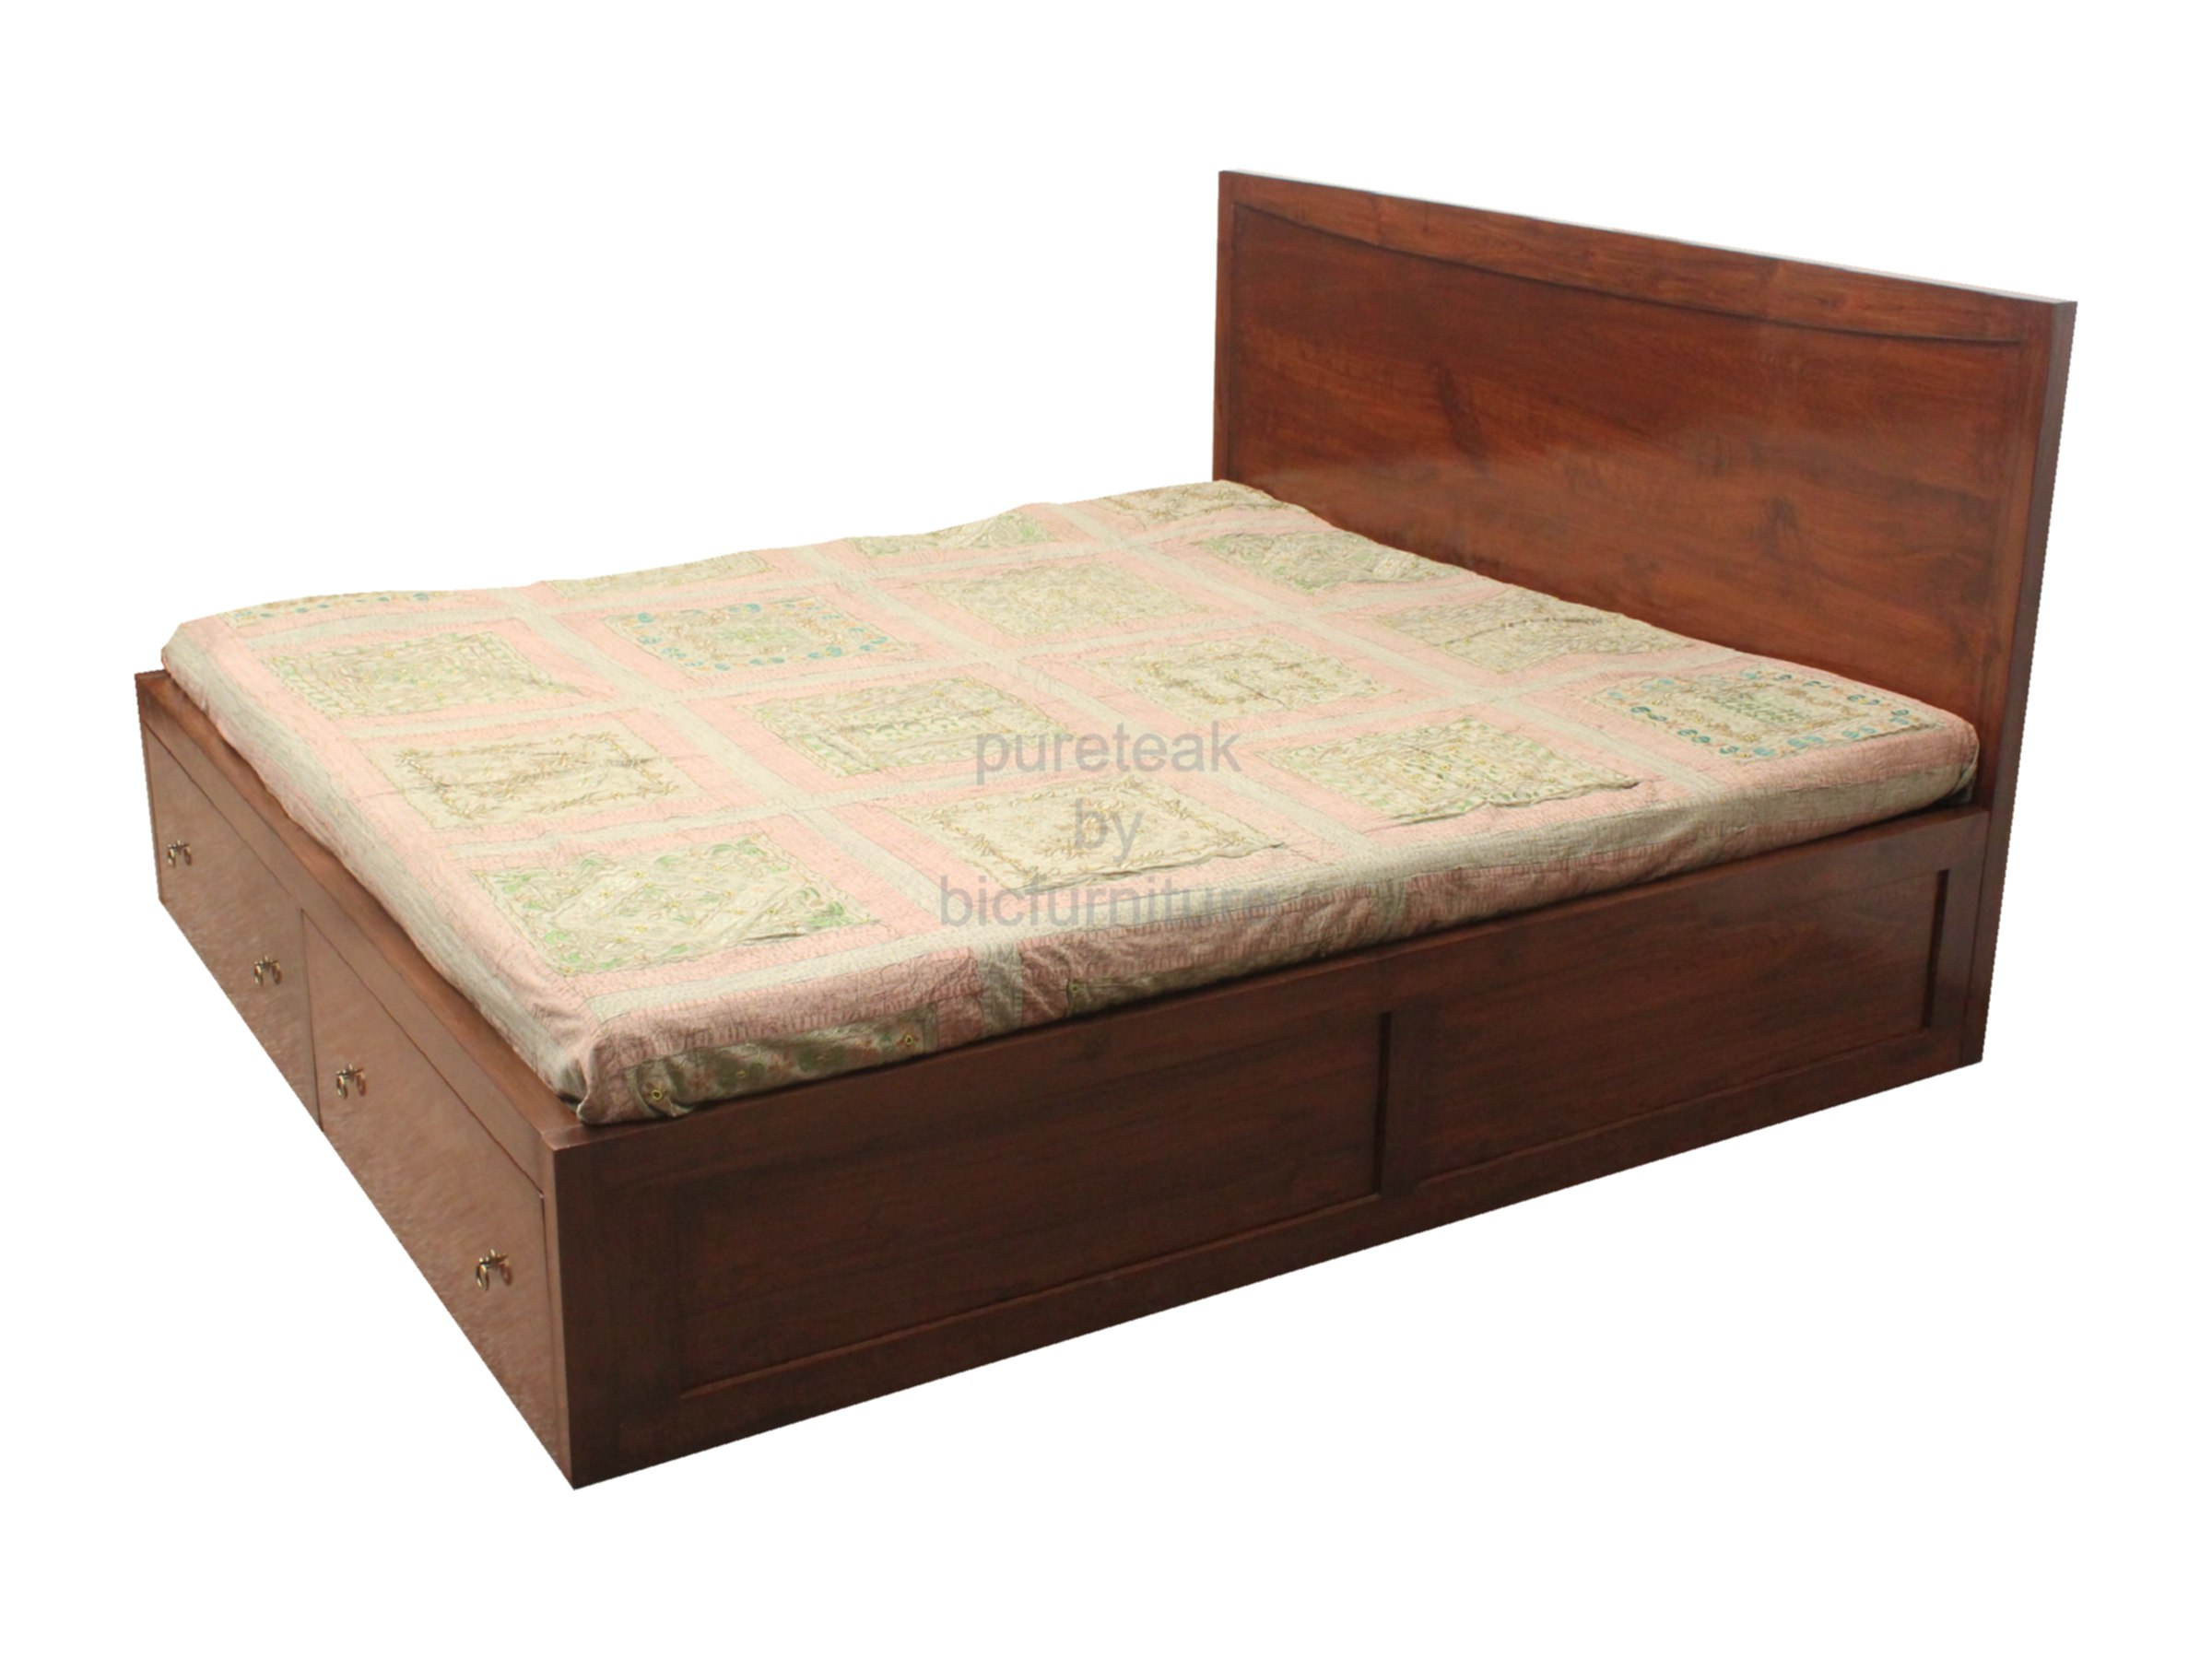 Double Bed In Teak Wood Bed 34 Details Bic Furniture India